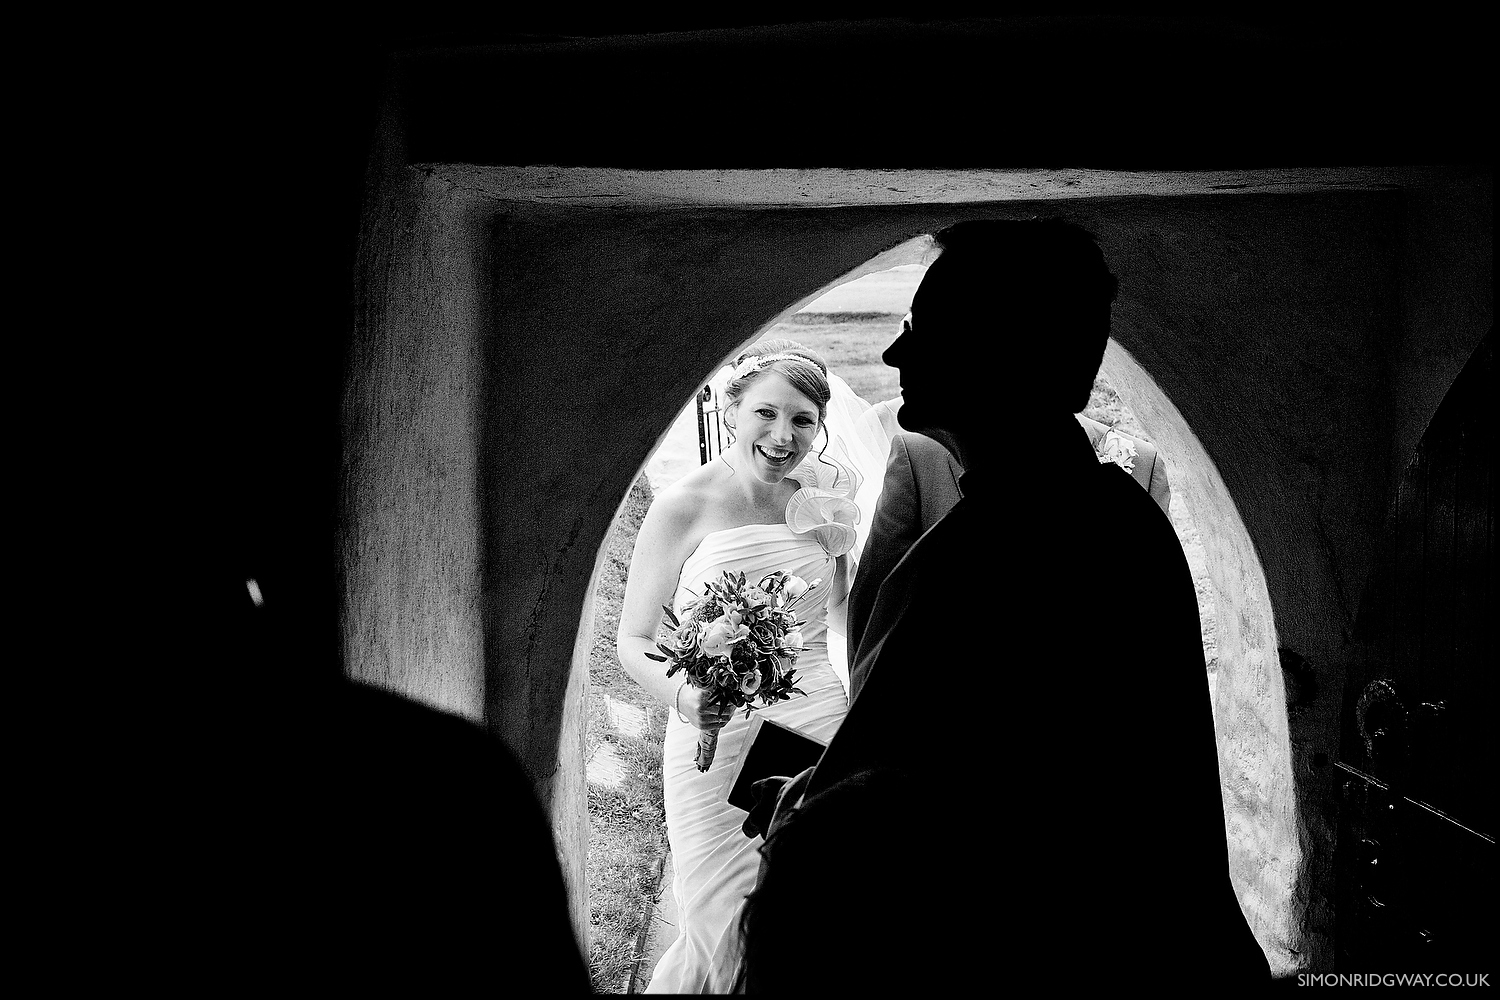 Wedding photography at Mwnt church, Cardigan